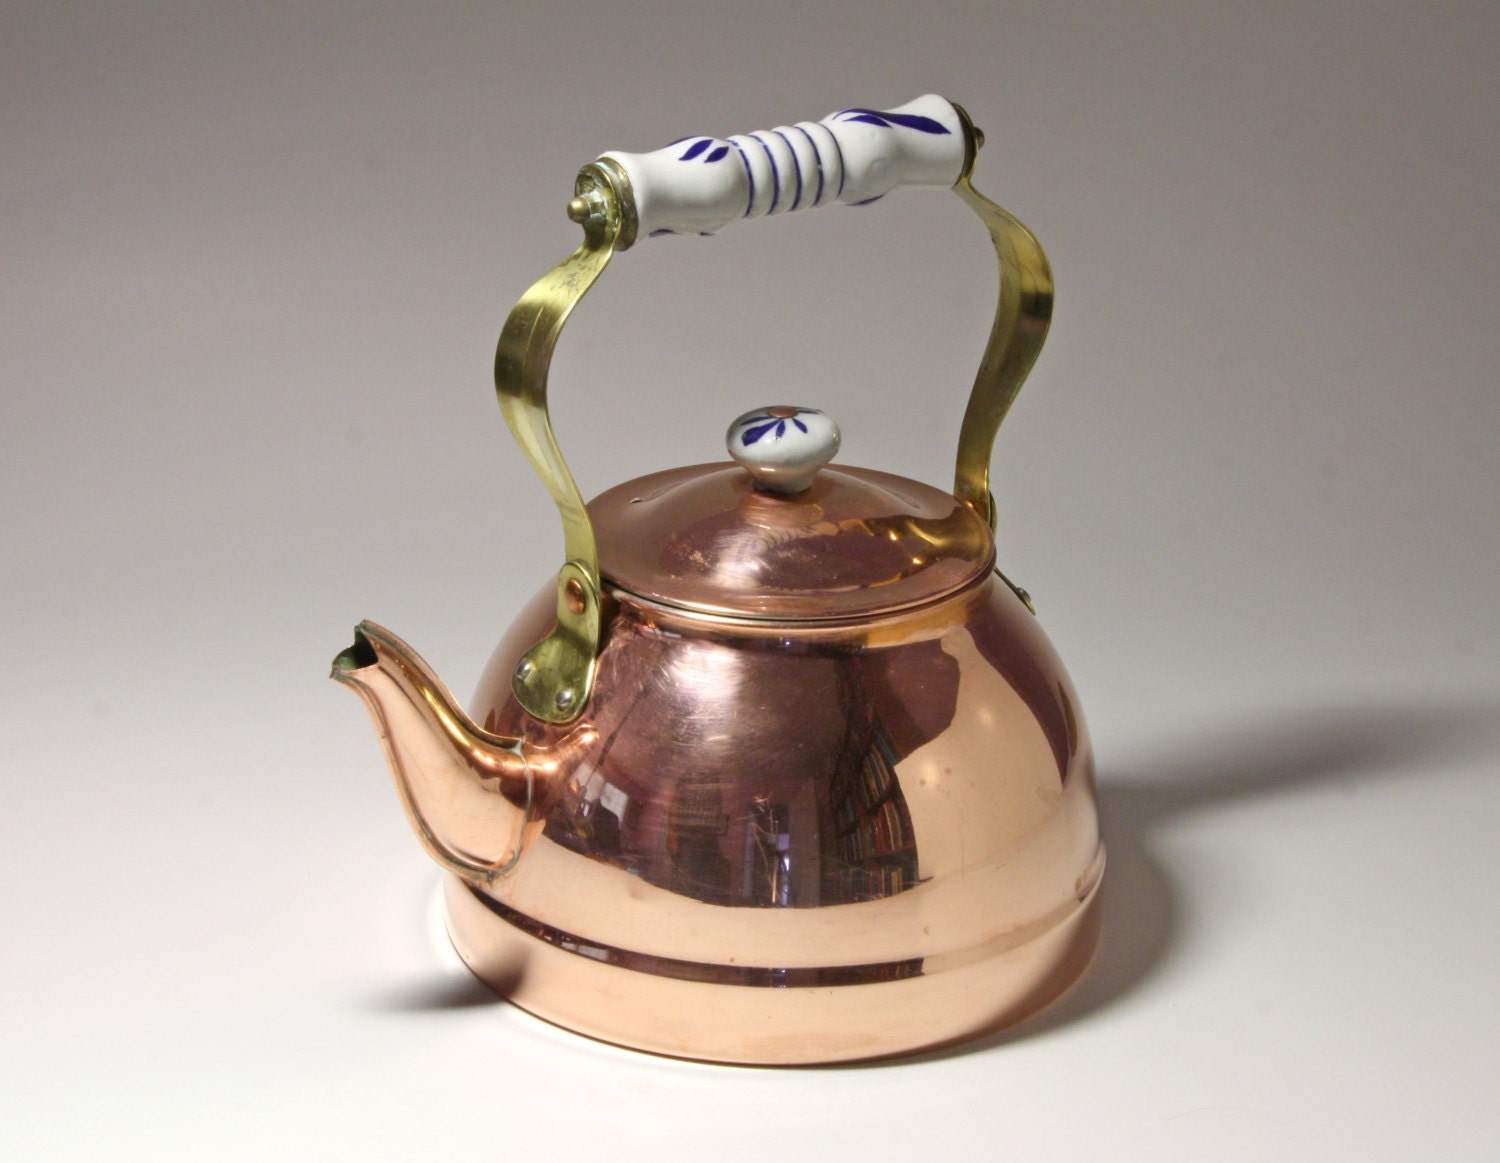 Vintage Copper Tea Kettle With Blue And White Ceramic Handle